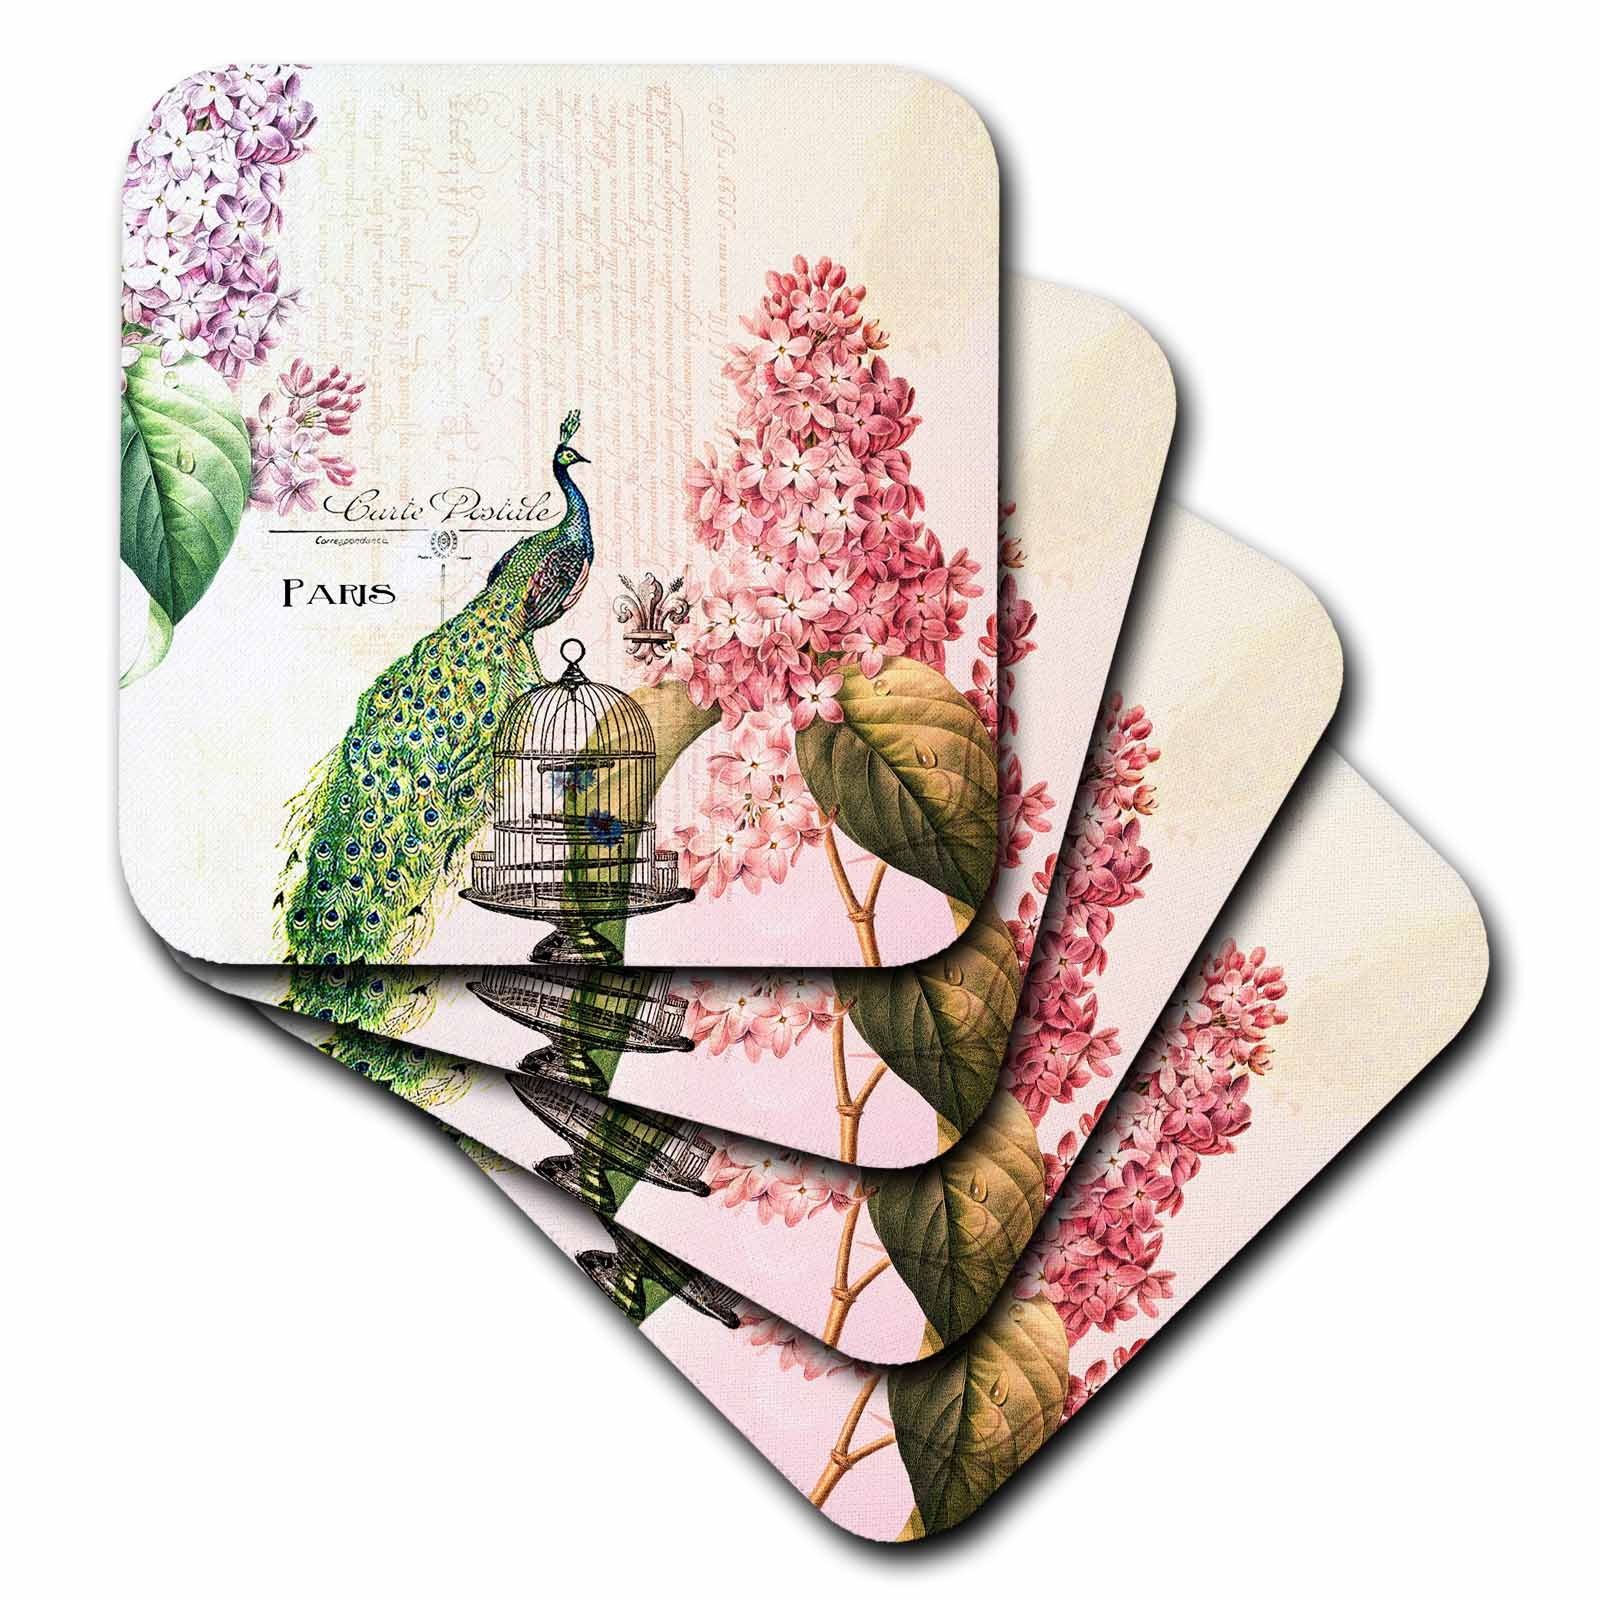 3dRose Paris Peacock with hydrangea flowers, Ceramic Tile Coasters, set of 4